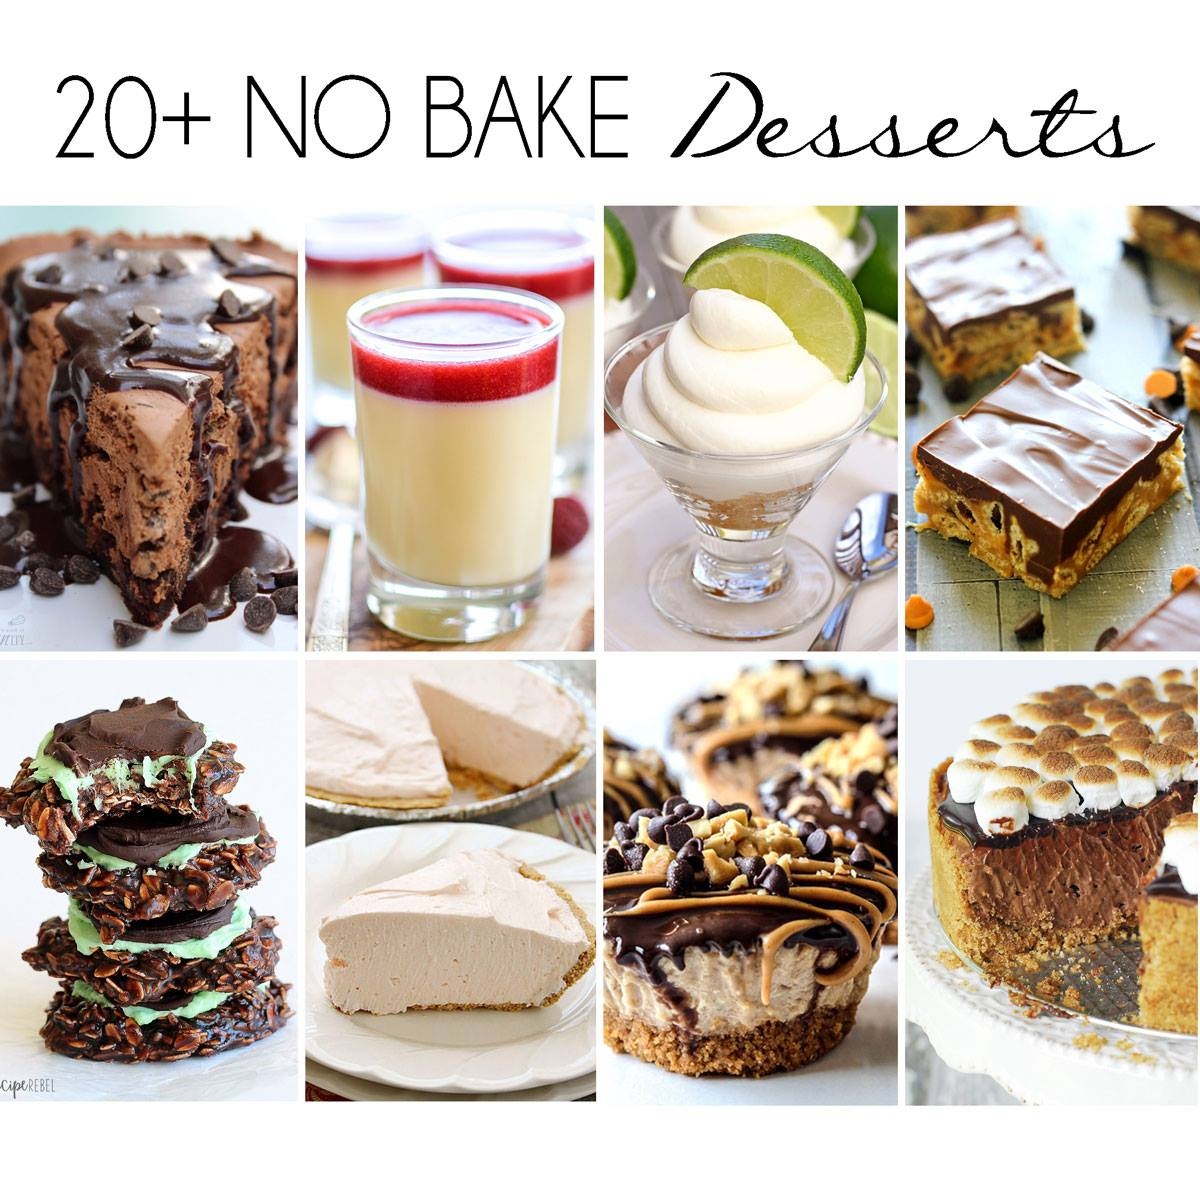 25 No Bake Dessert Recipes High Heels And Grills